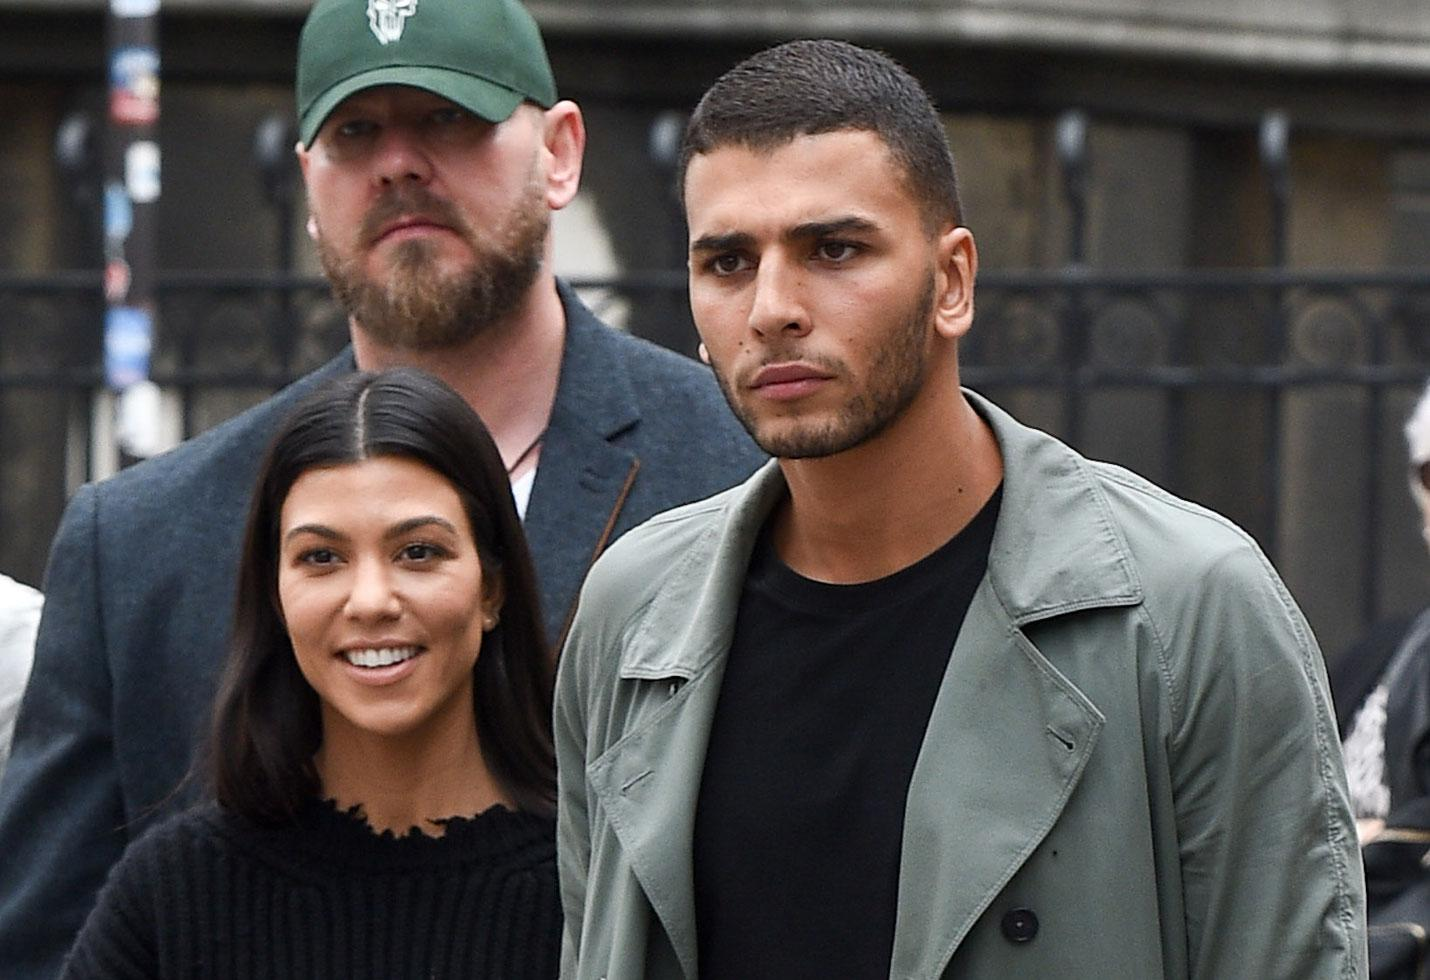 KUWK: Kourtney Kardashian And Younes Bendjima Back Together? - They Were Photographed Holding Hands During L.A. Date!